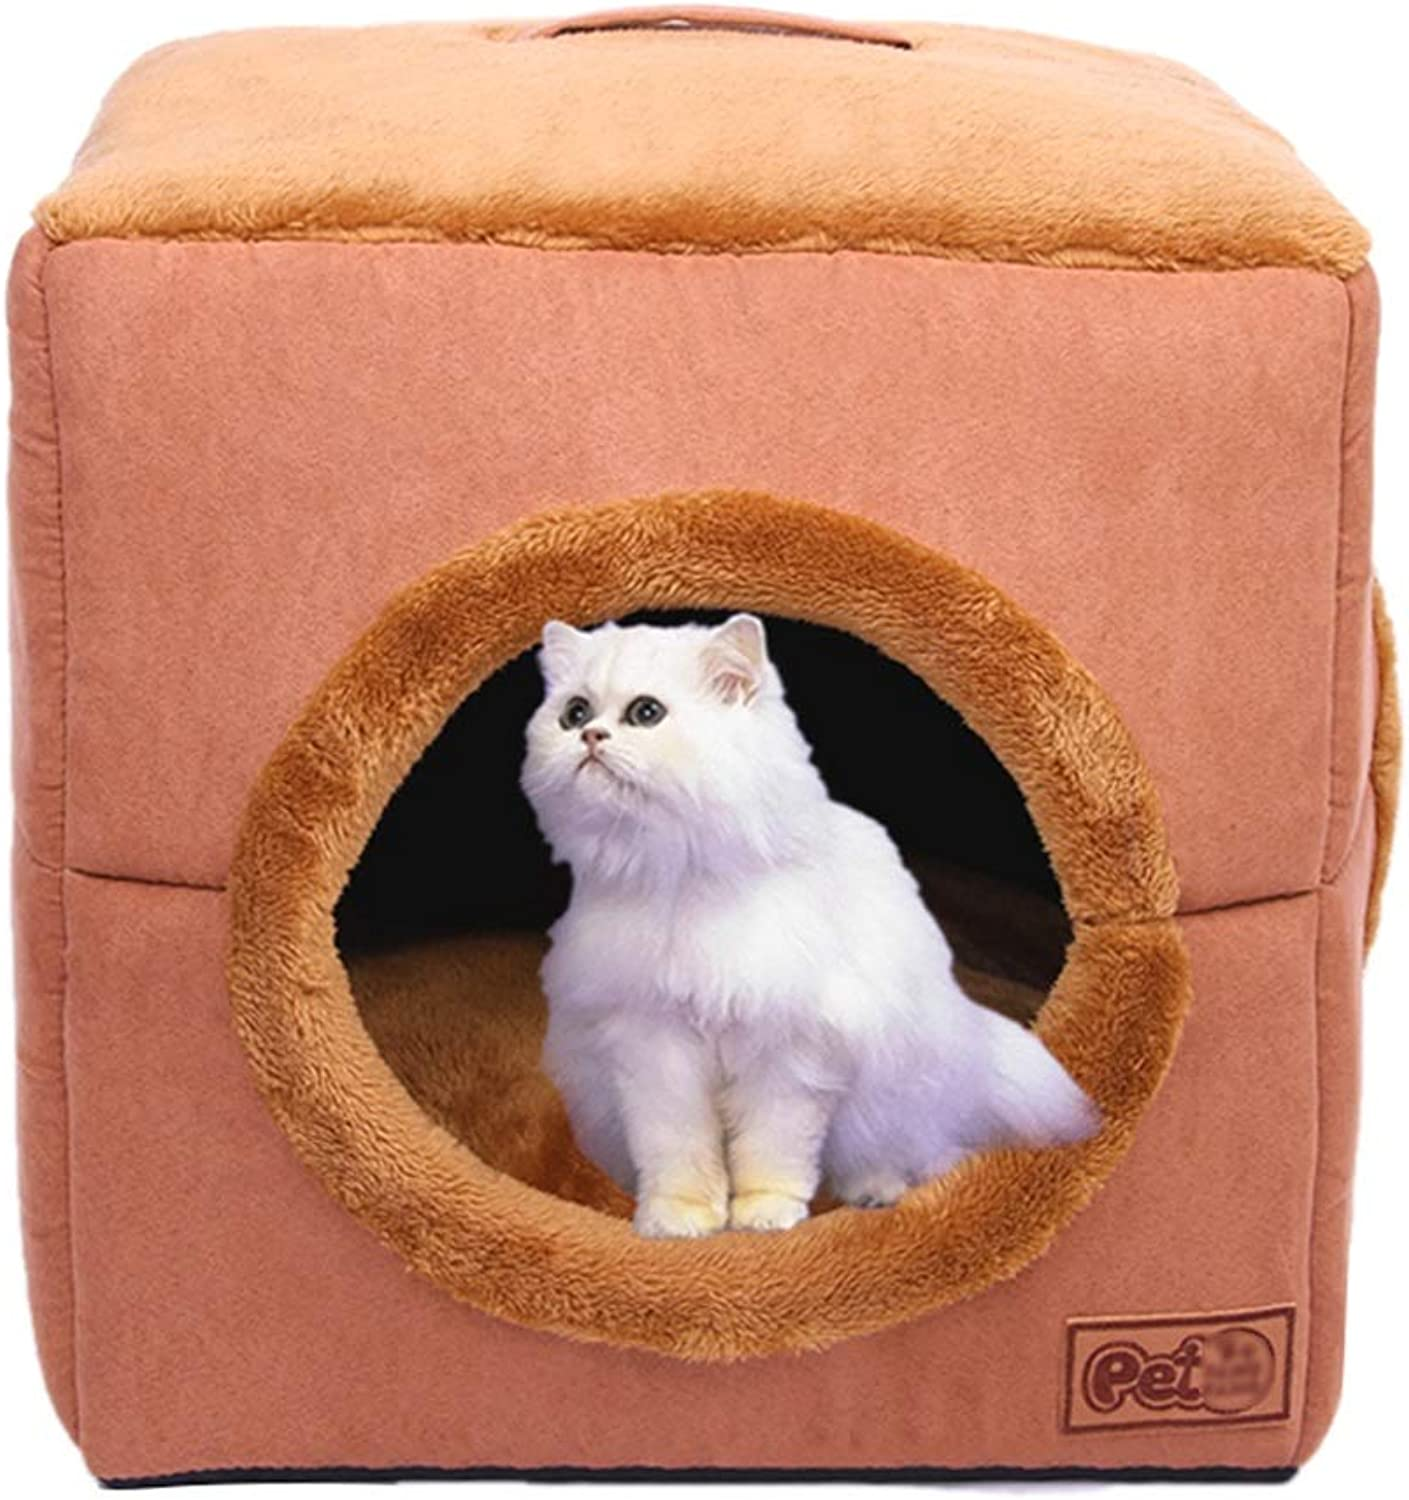 Cat Bed   Cat House Cat Sofa Removable & Washable Cat Supplies, Small Size - Suitable for All Seasons